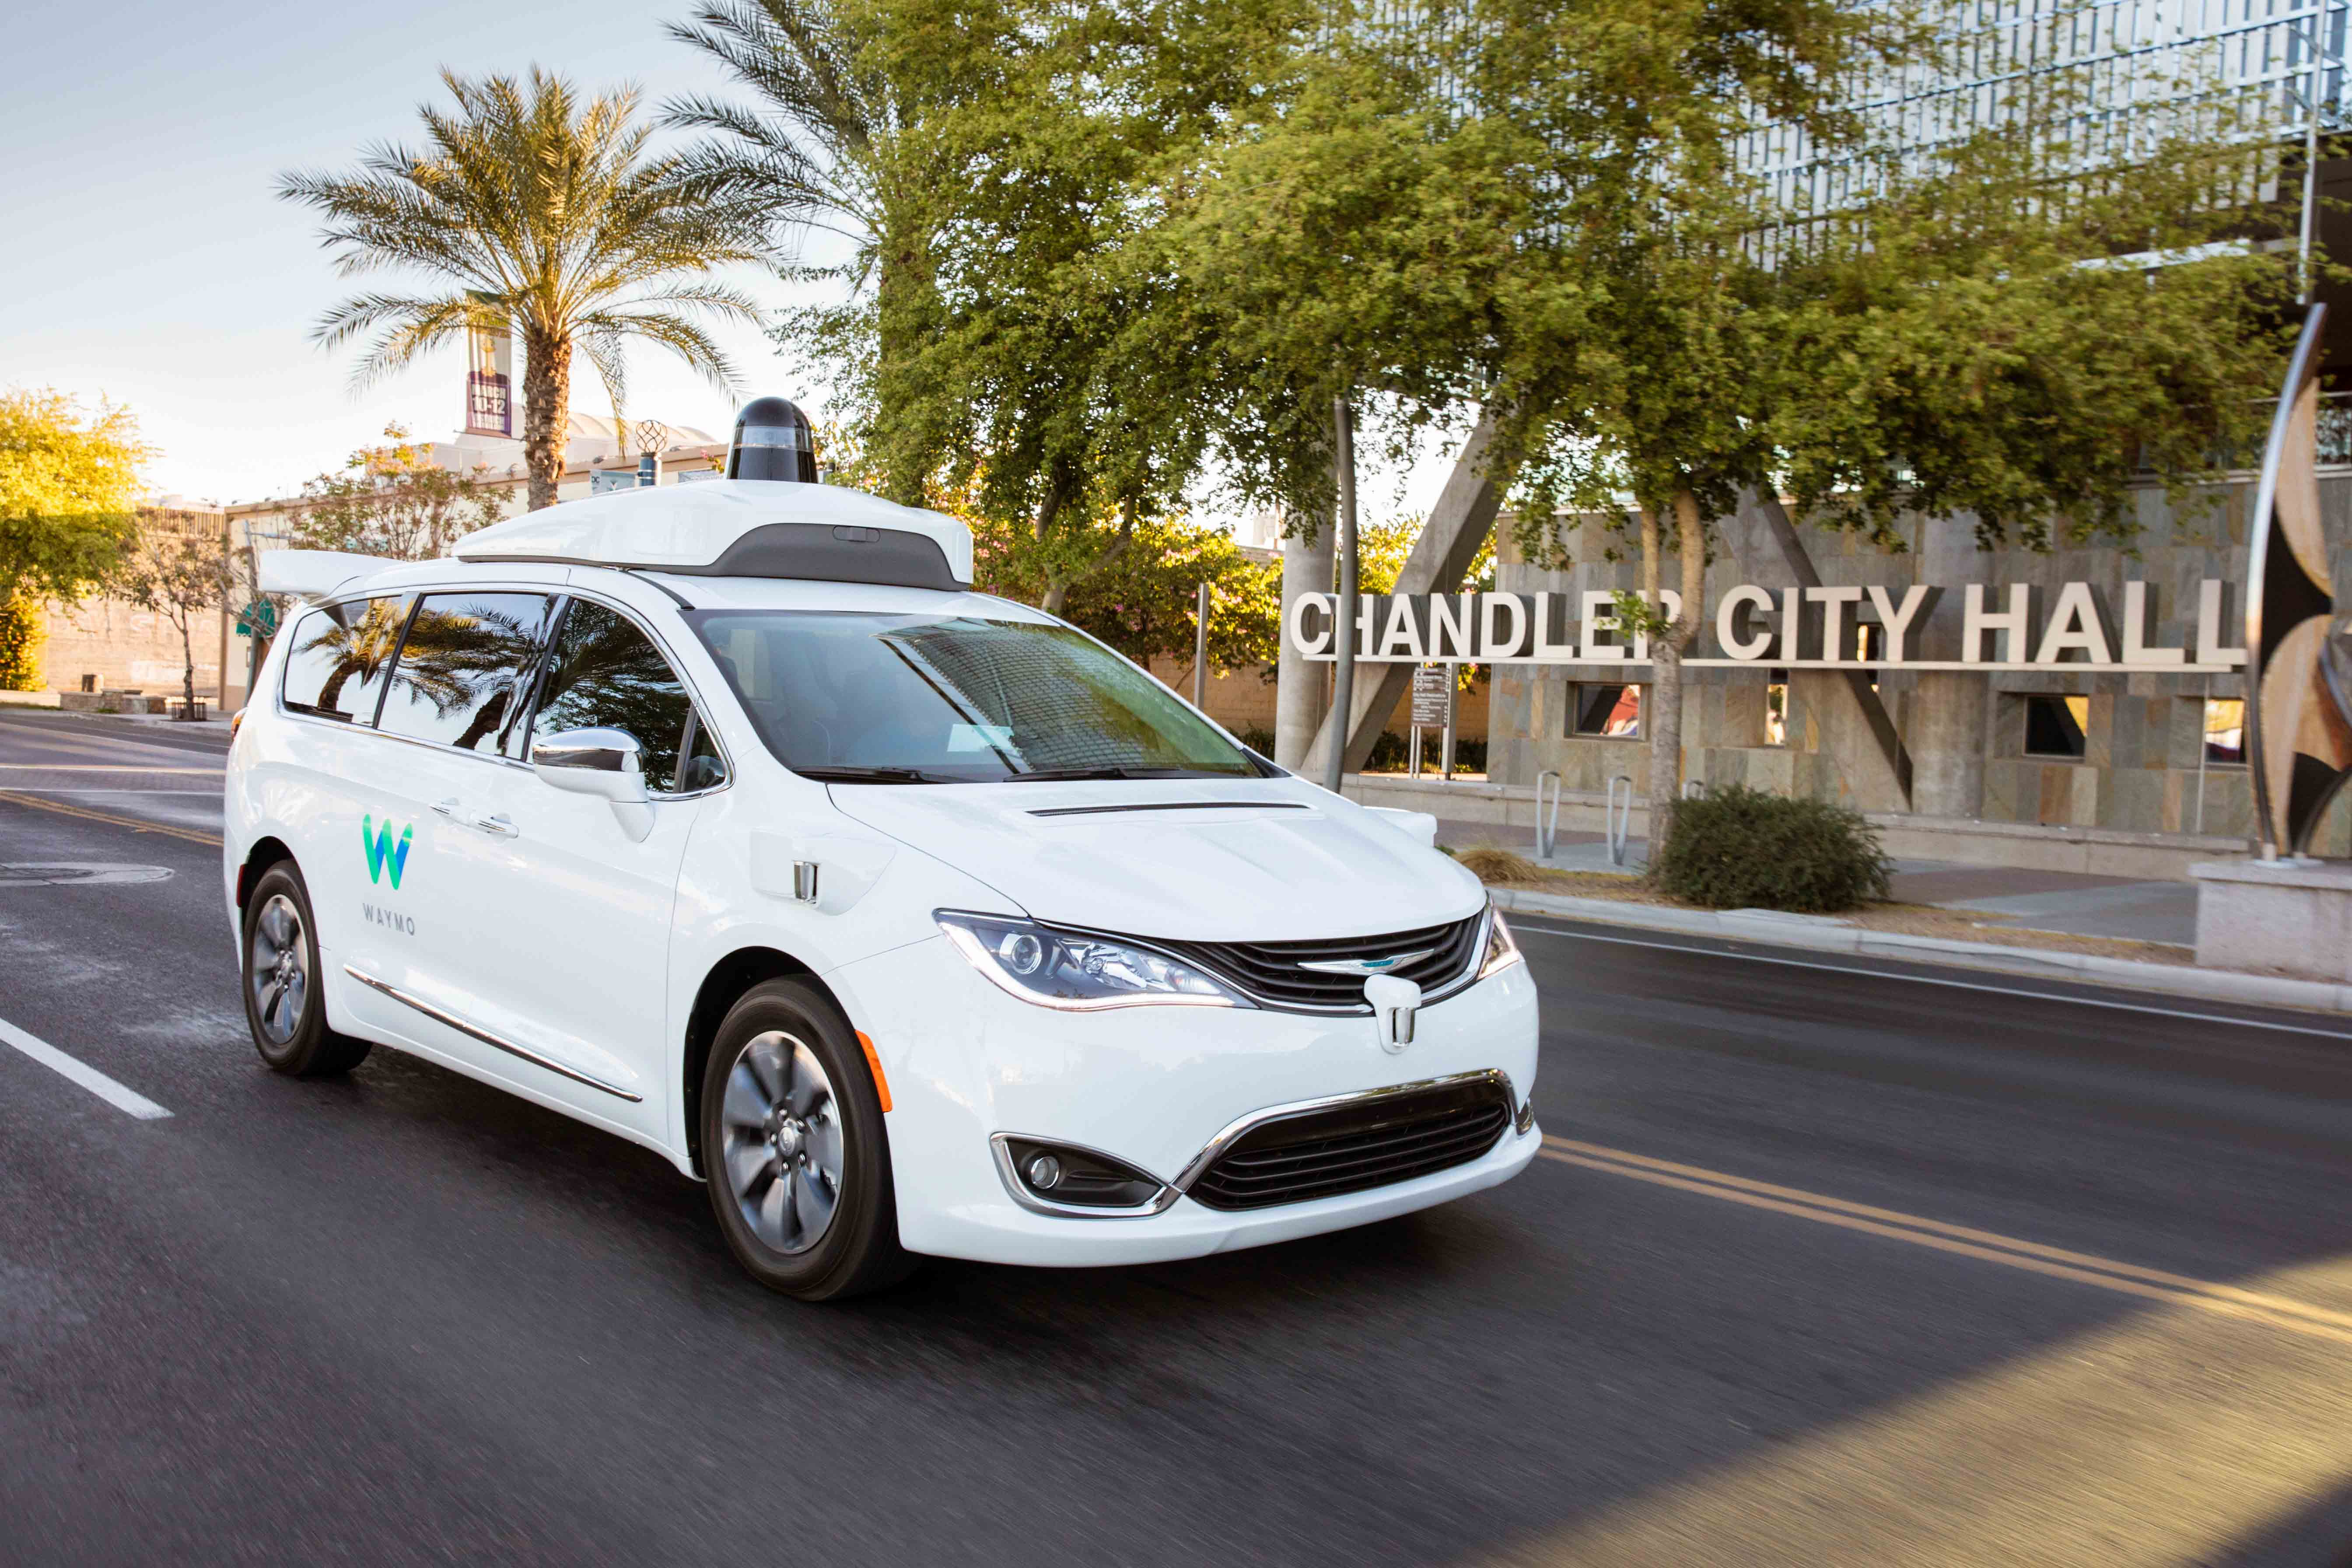 A Chrysler Pacifica operated by Google's Waymo.